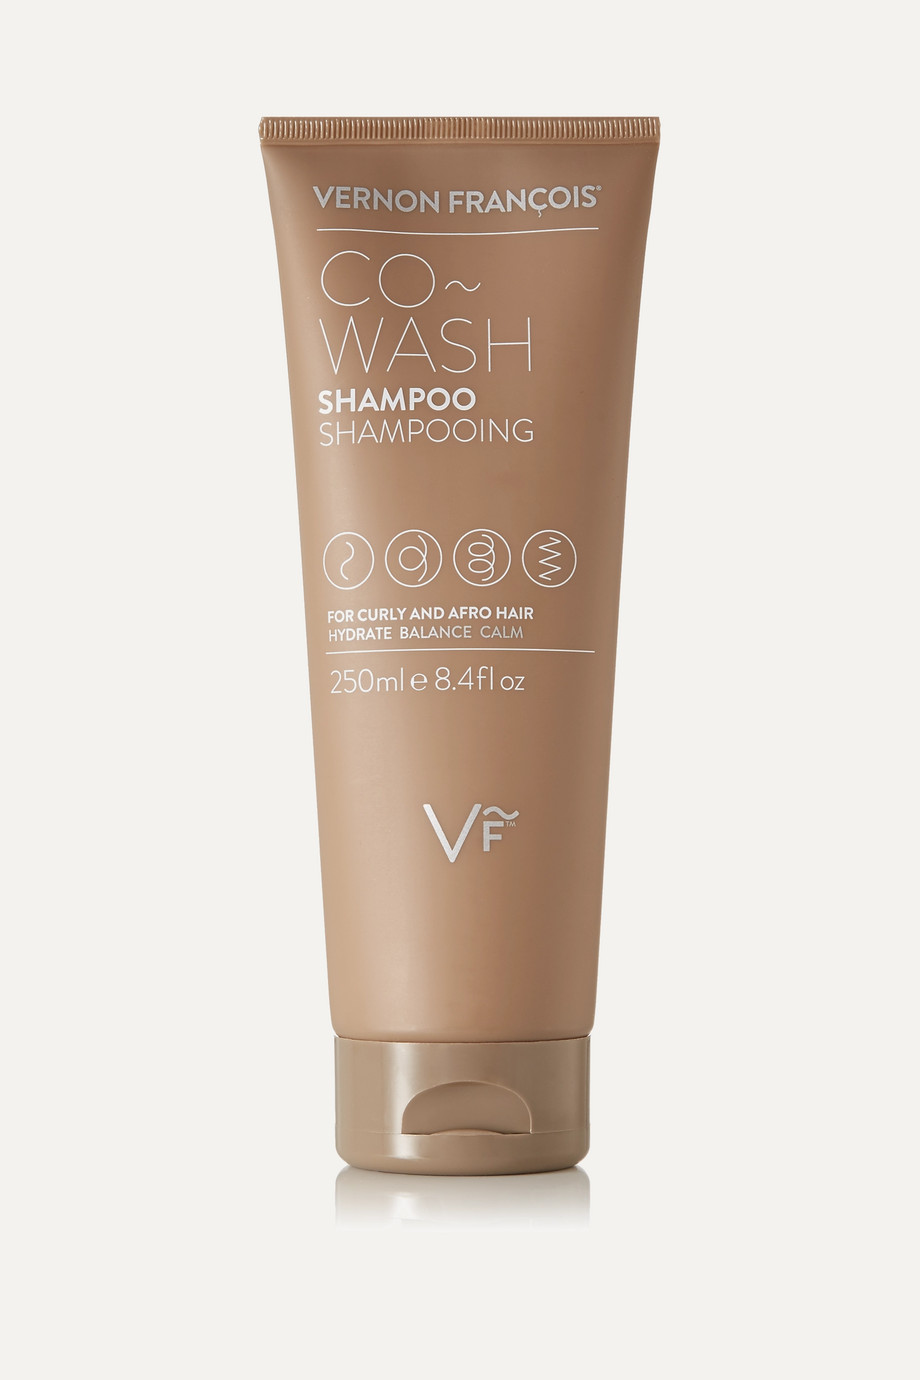 Vernon François Co-Wash Shampoo, 250ml